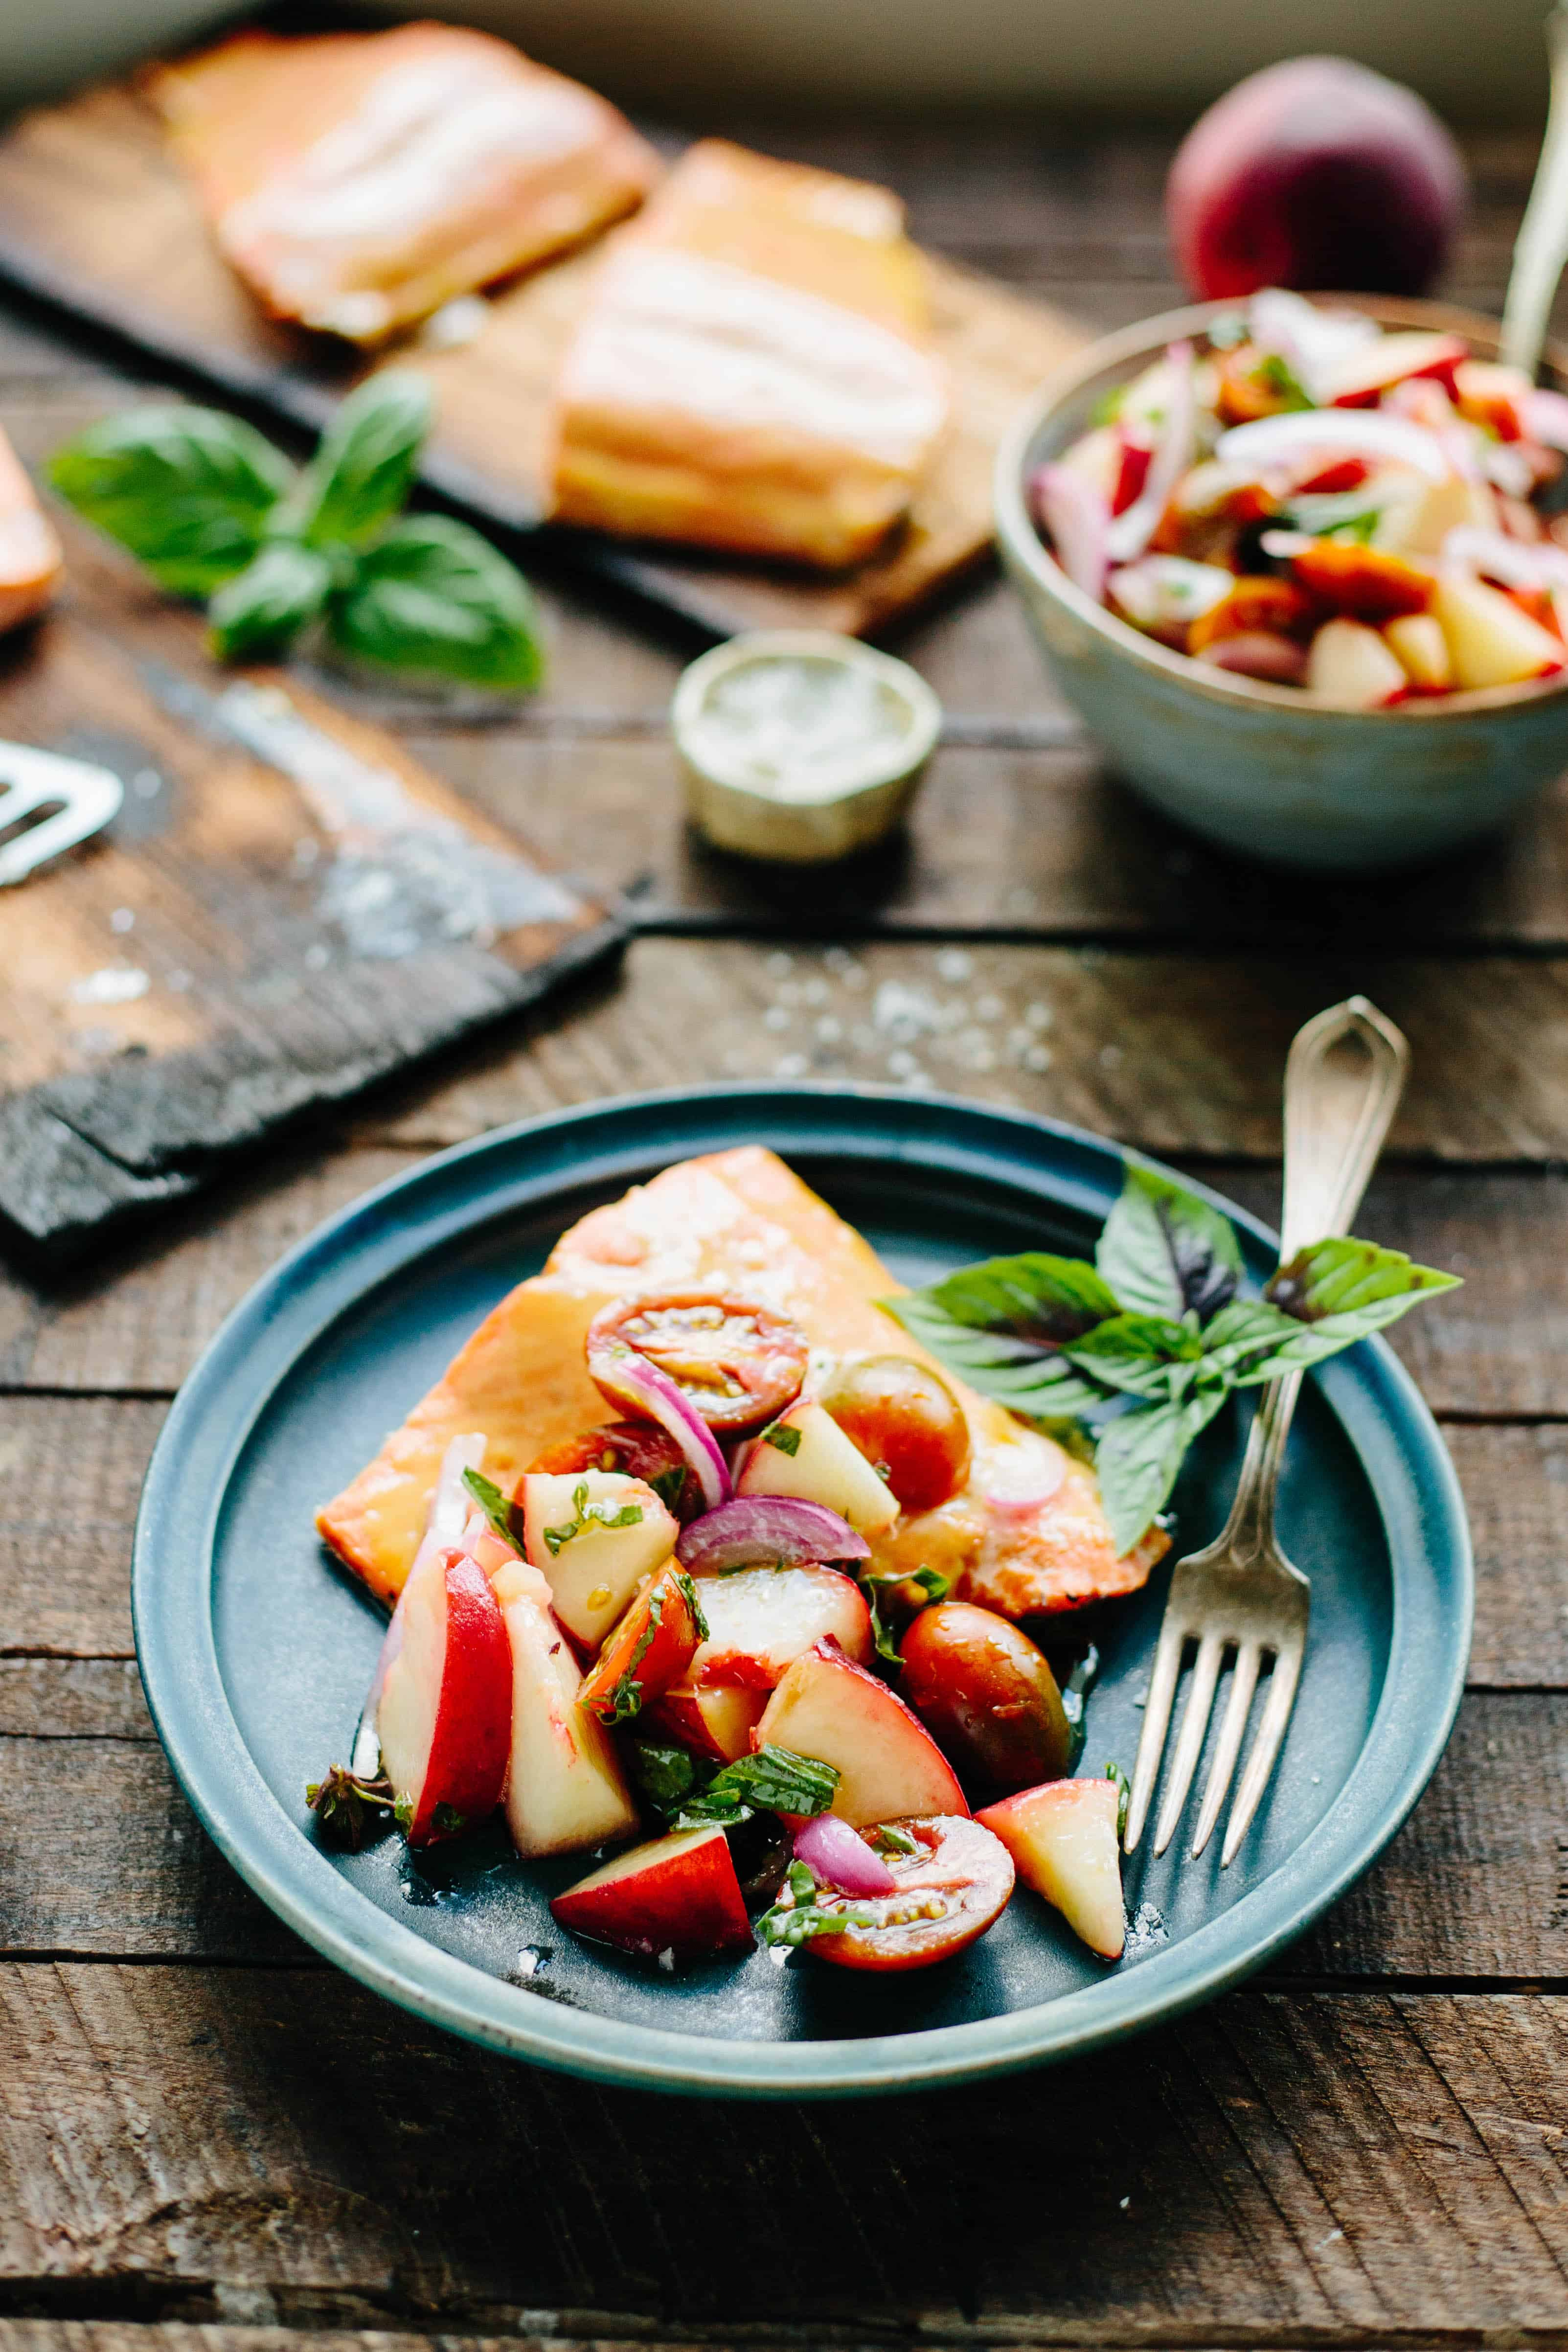 CEDAR PLANKED SALMON with Peach + Tomato Salsa | Delicious wild salmon with a Dijon glaze, cooked over smoky cedar planks and finished with a light and bright summer salsa! #sockeye #salmon #easy #recipe #peaches #tomatoes #cedarplank | ColeyCooks.com